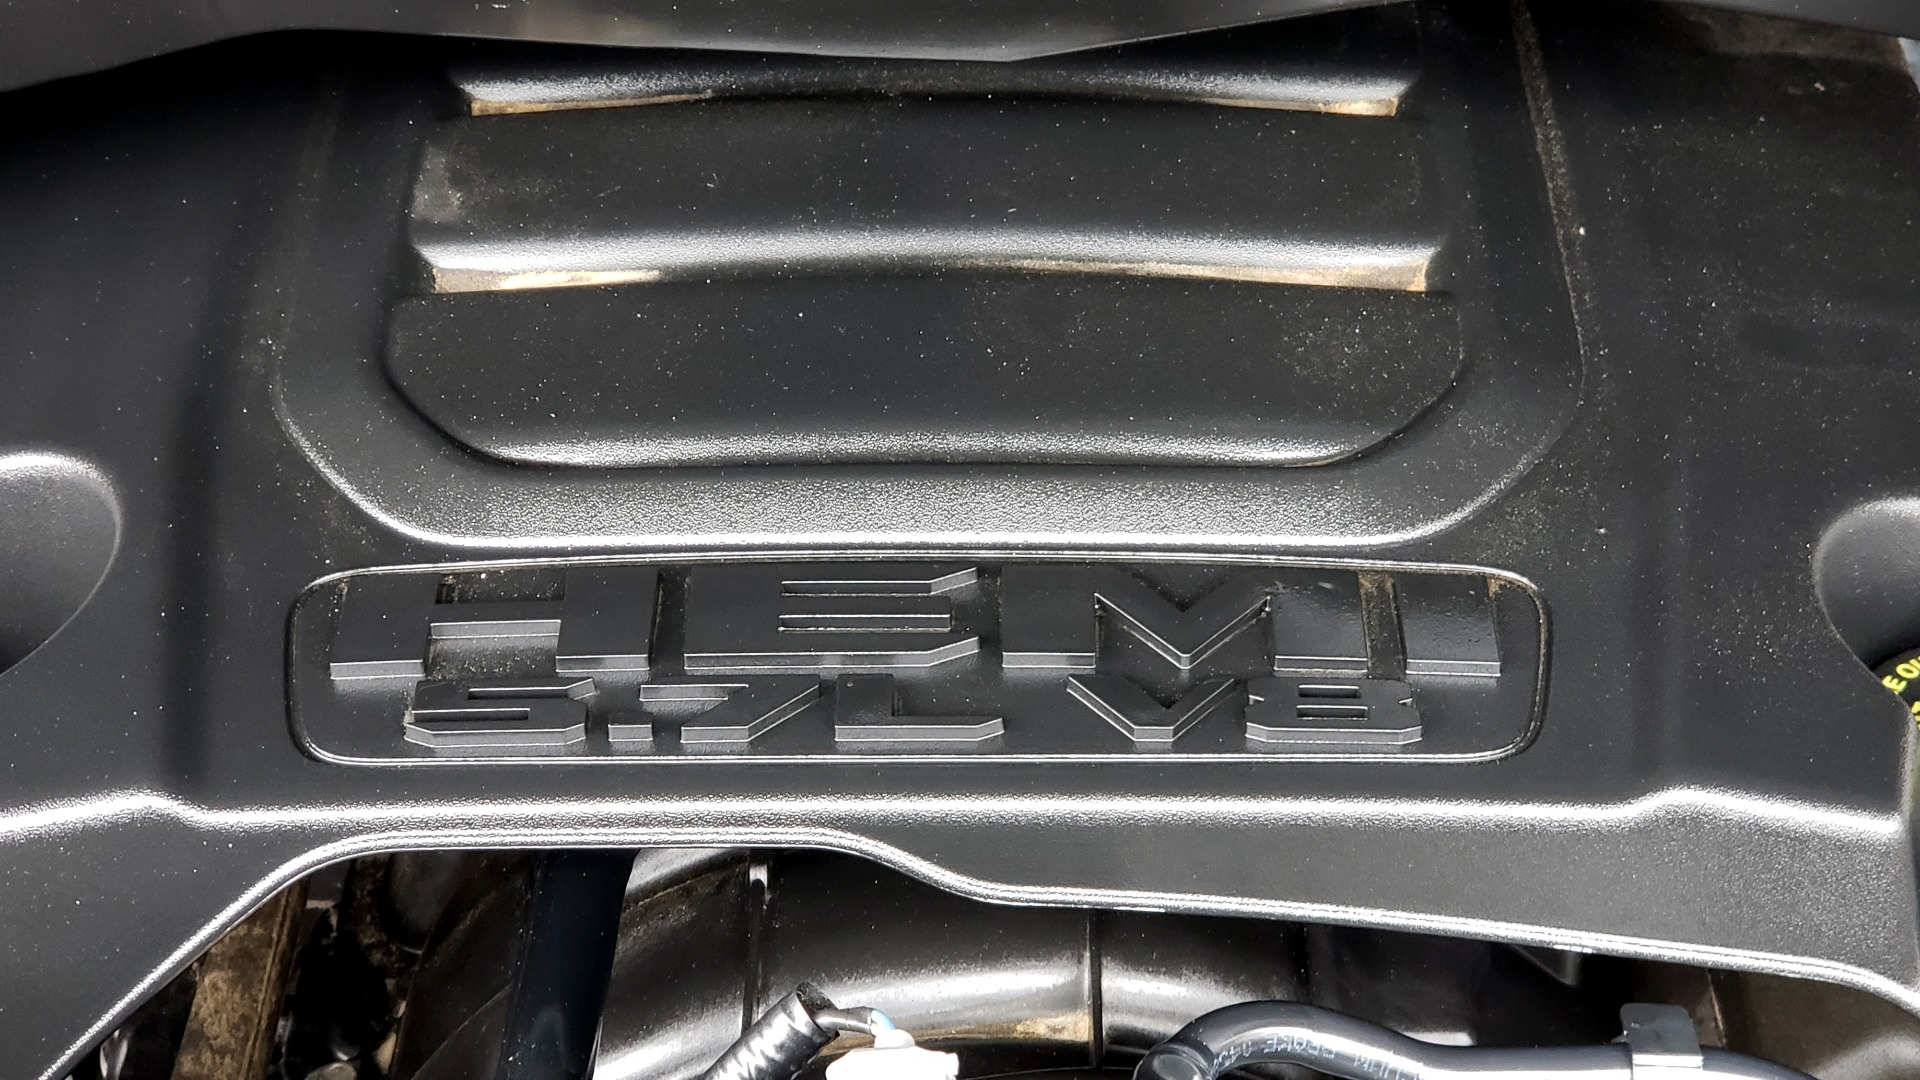 Used 2019 Ram 1500 LARAMIE SPORT / 2WD / 5.7L HEMI / NAV / BLIND SPOT / HTD STS / REARVIEW for sale Sold at Formula Imports in Charlotte NC 28227 26